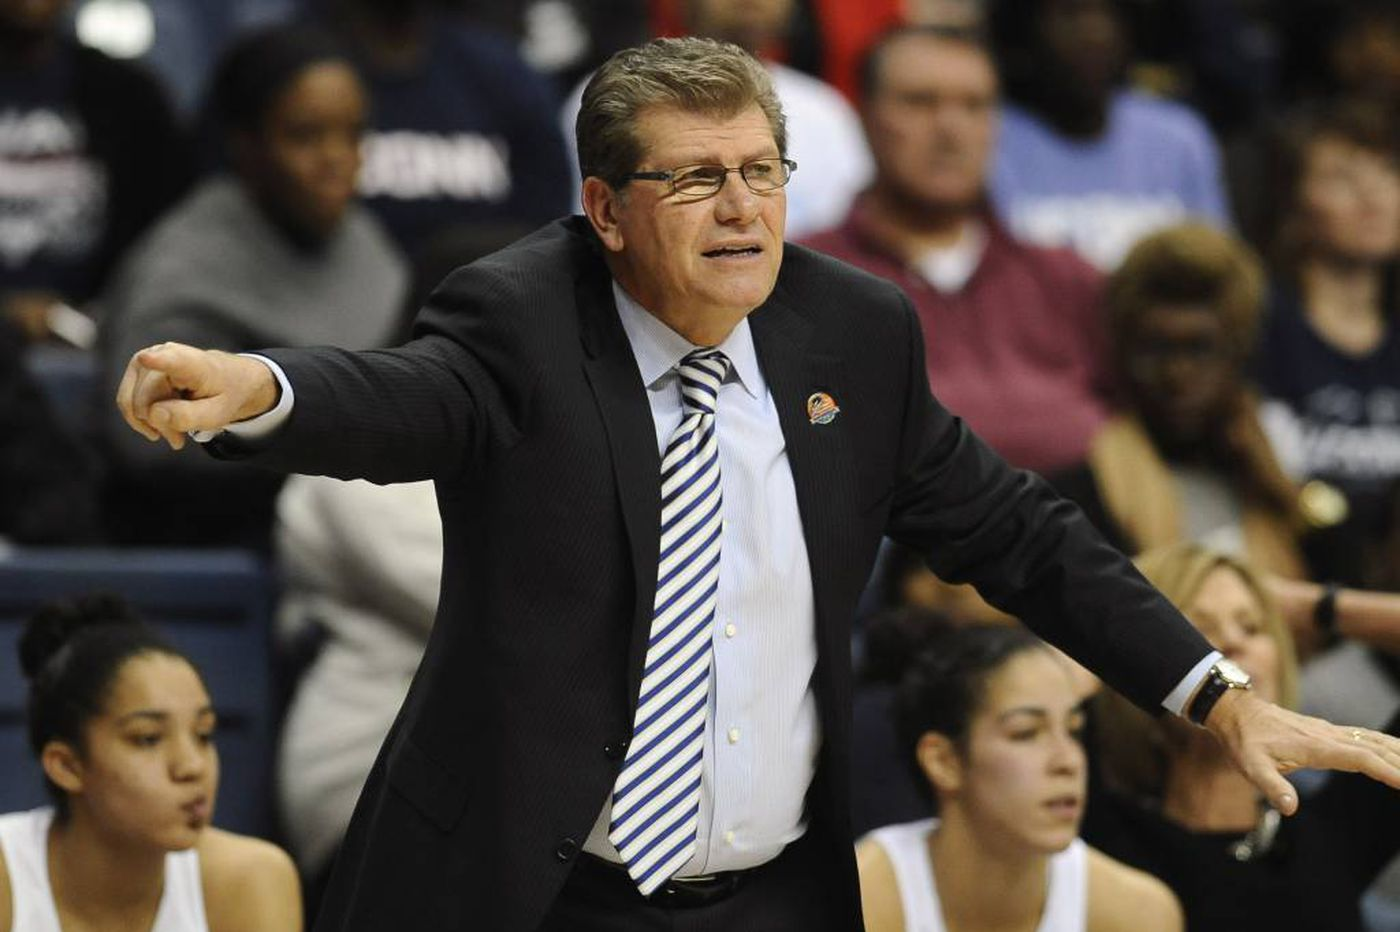 Staley, Auriemma and McGraw share Philly experiences